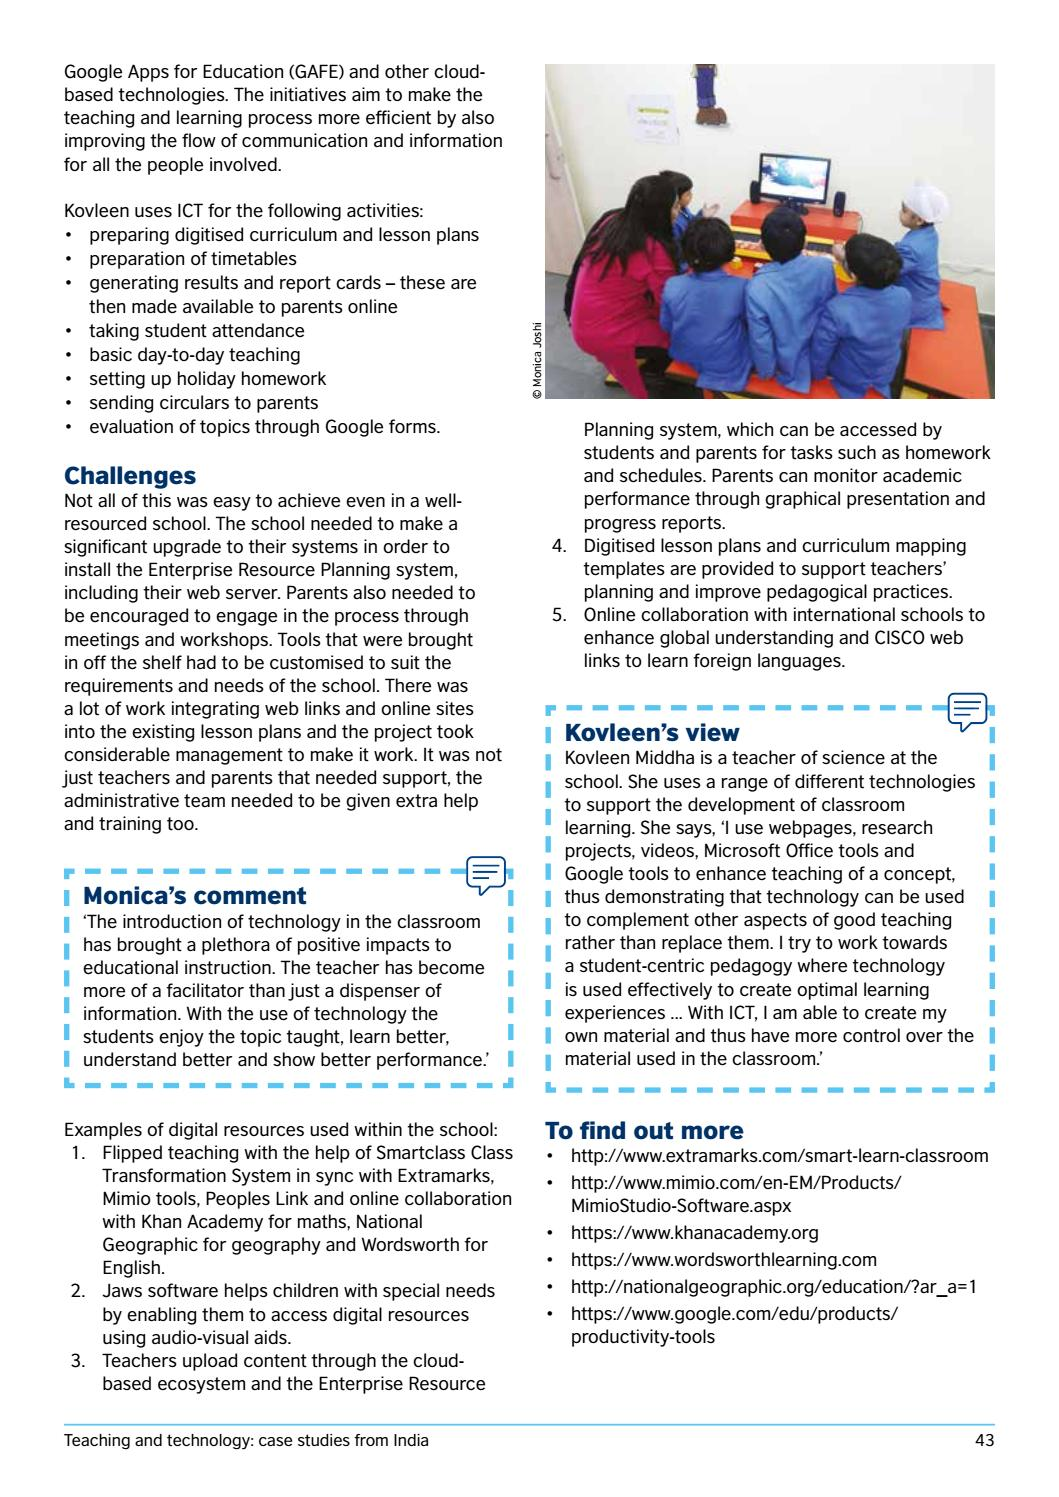 Teaching and technology case studies from India by British Council ...